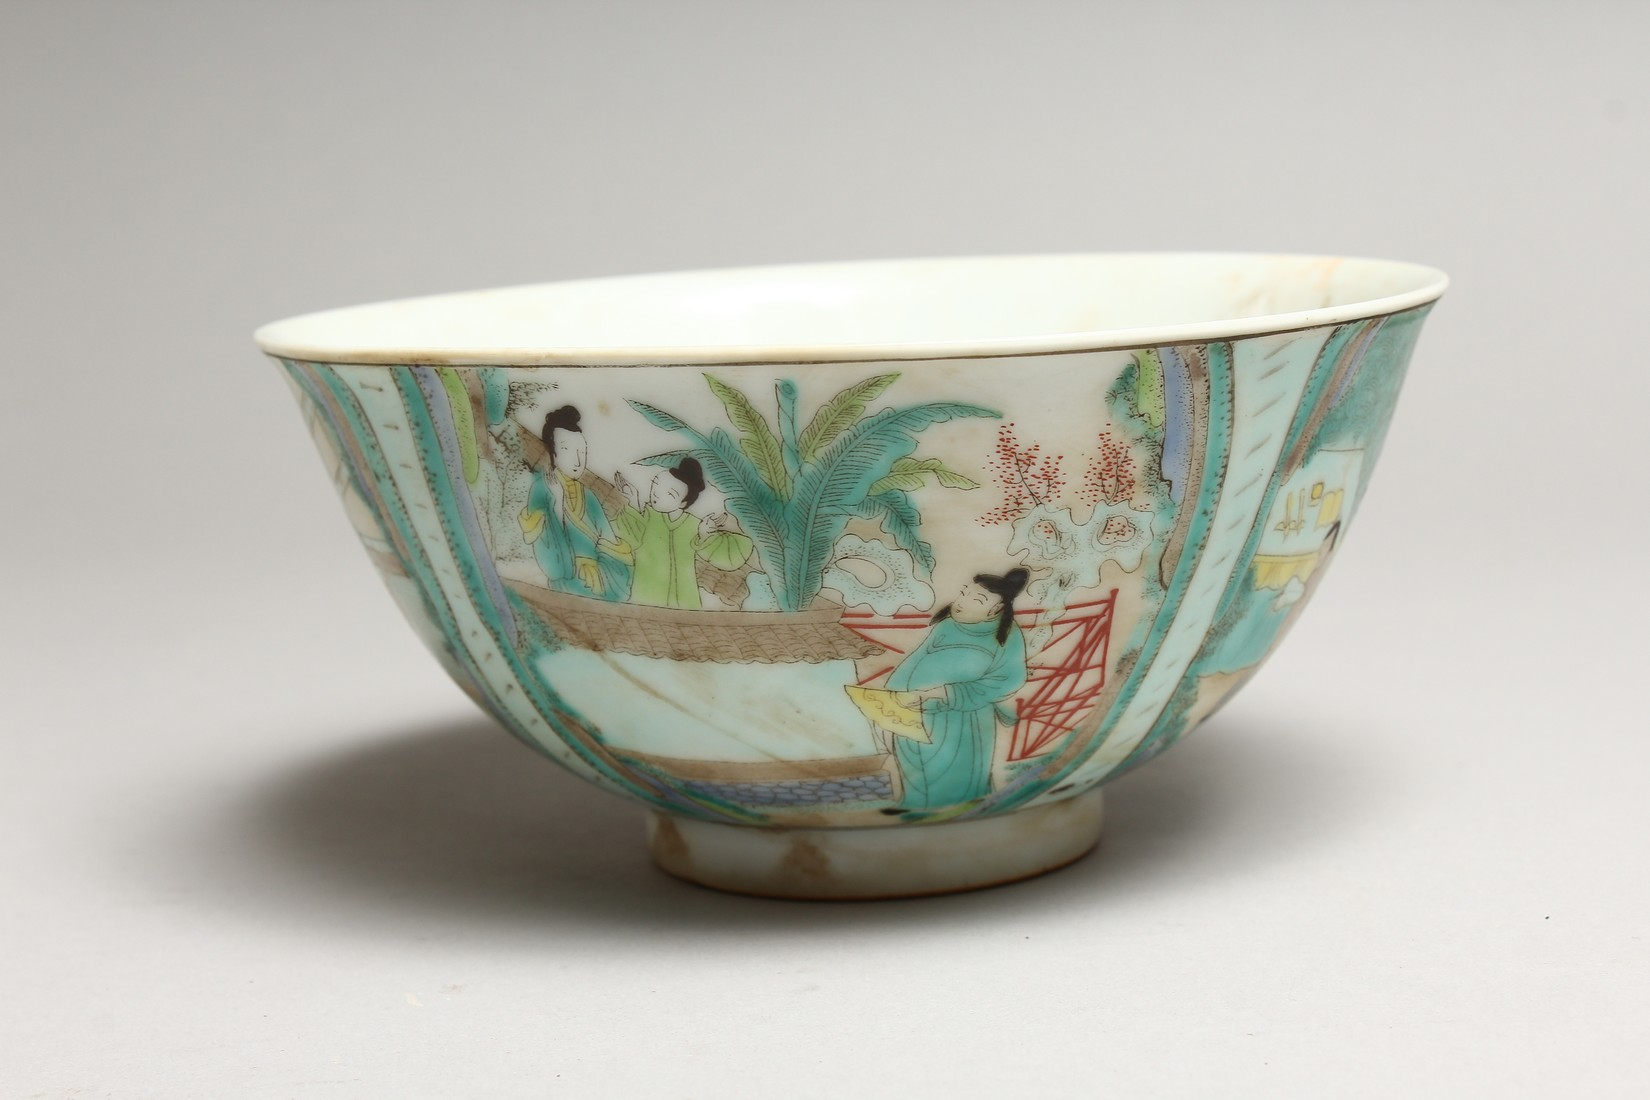 A CHINESE FAMILLE VERTE PORCELAIN BOWL, painted with figures in a landscape. 6.25ins diameter. - Image 2 of 6